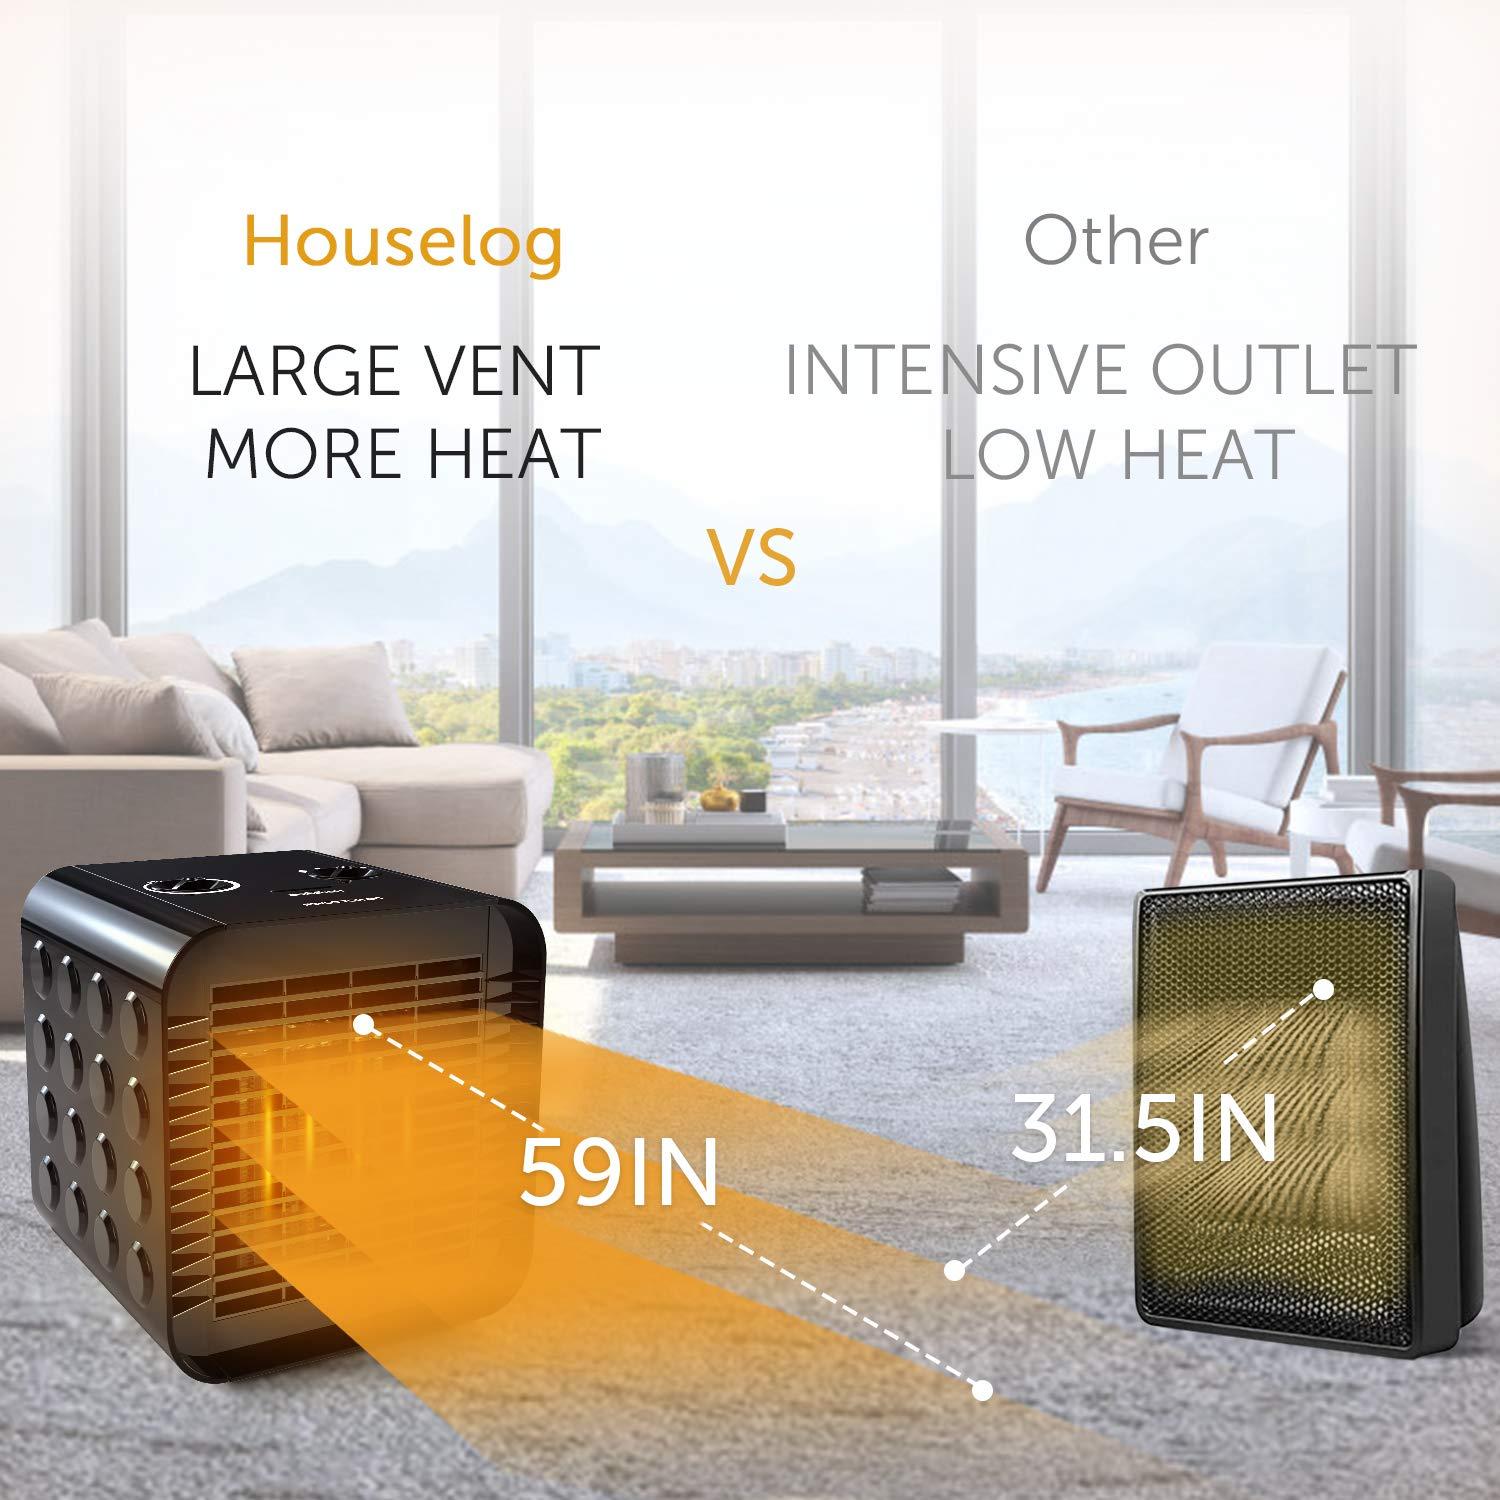 Houselog Desk Space Heater for Office and Home,Tip-Over & Overheat Protection,Hot & Natural Fan Adjustable,PTC Ceramic Personal Heaters Indoor Portable Tabletop or Under-Desk 750W/1500W,Black